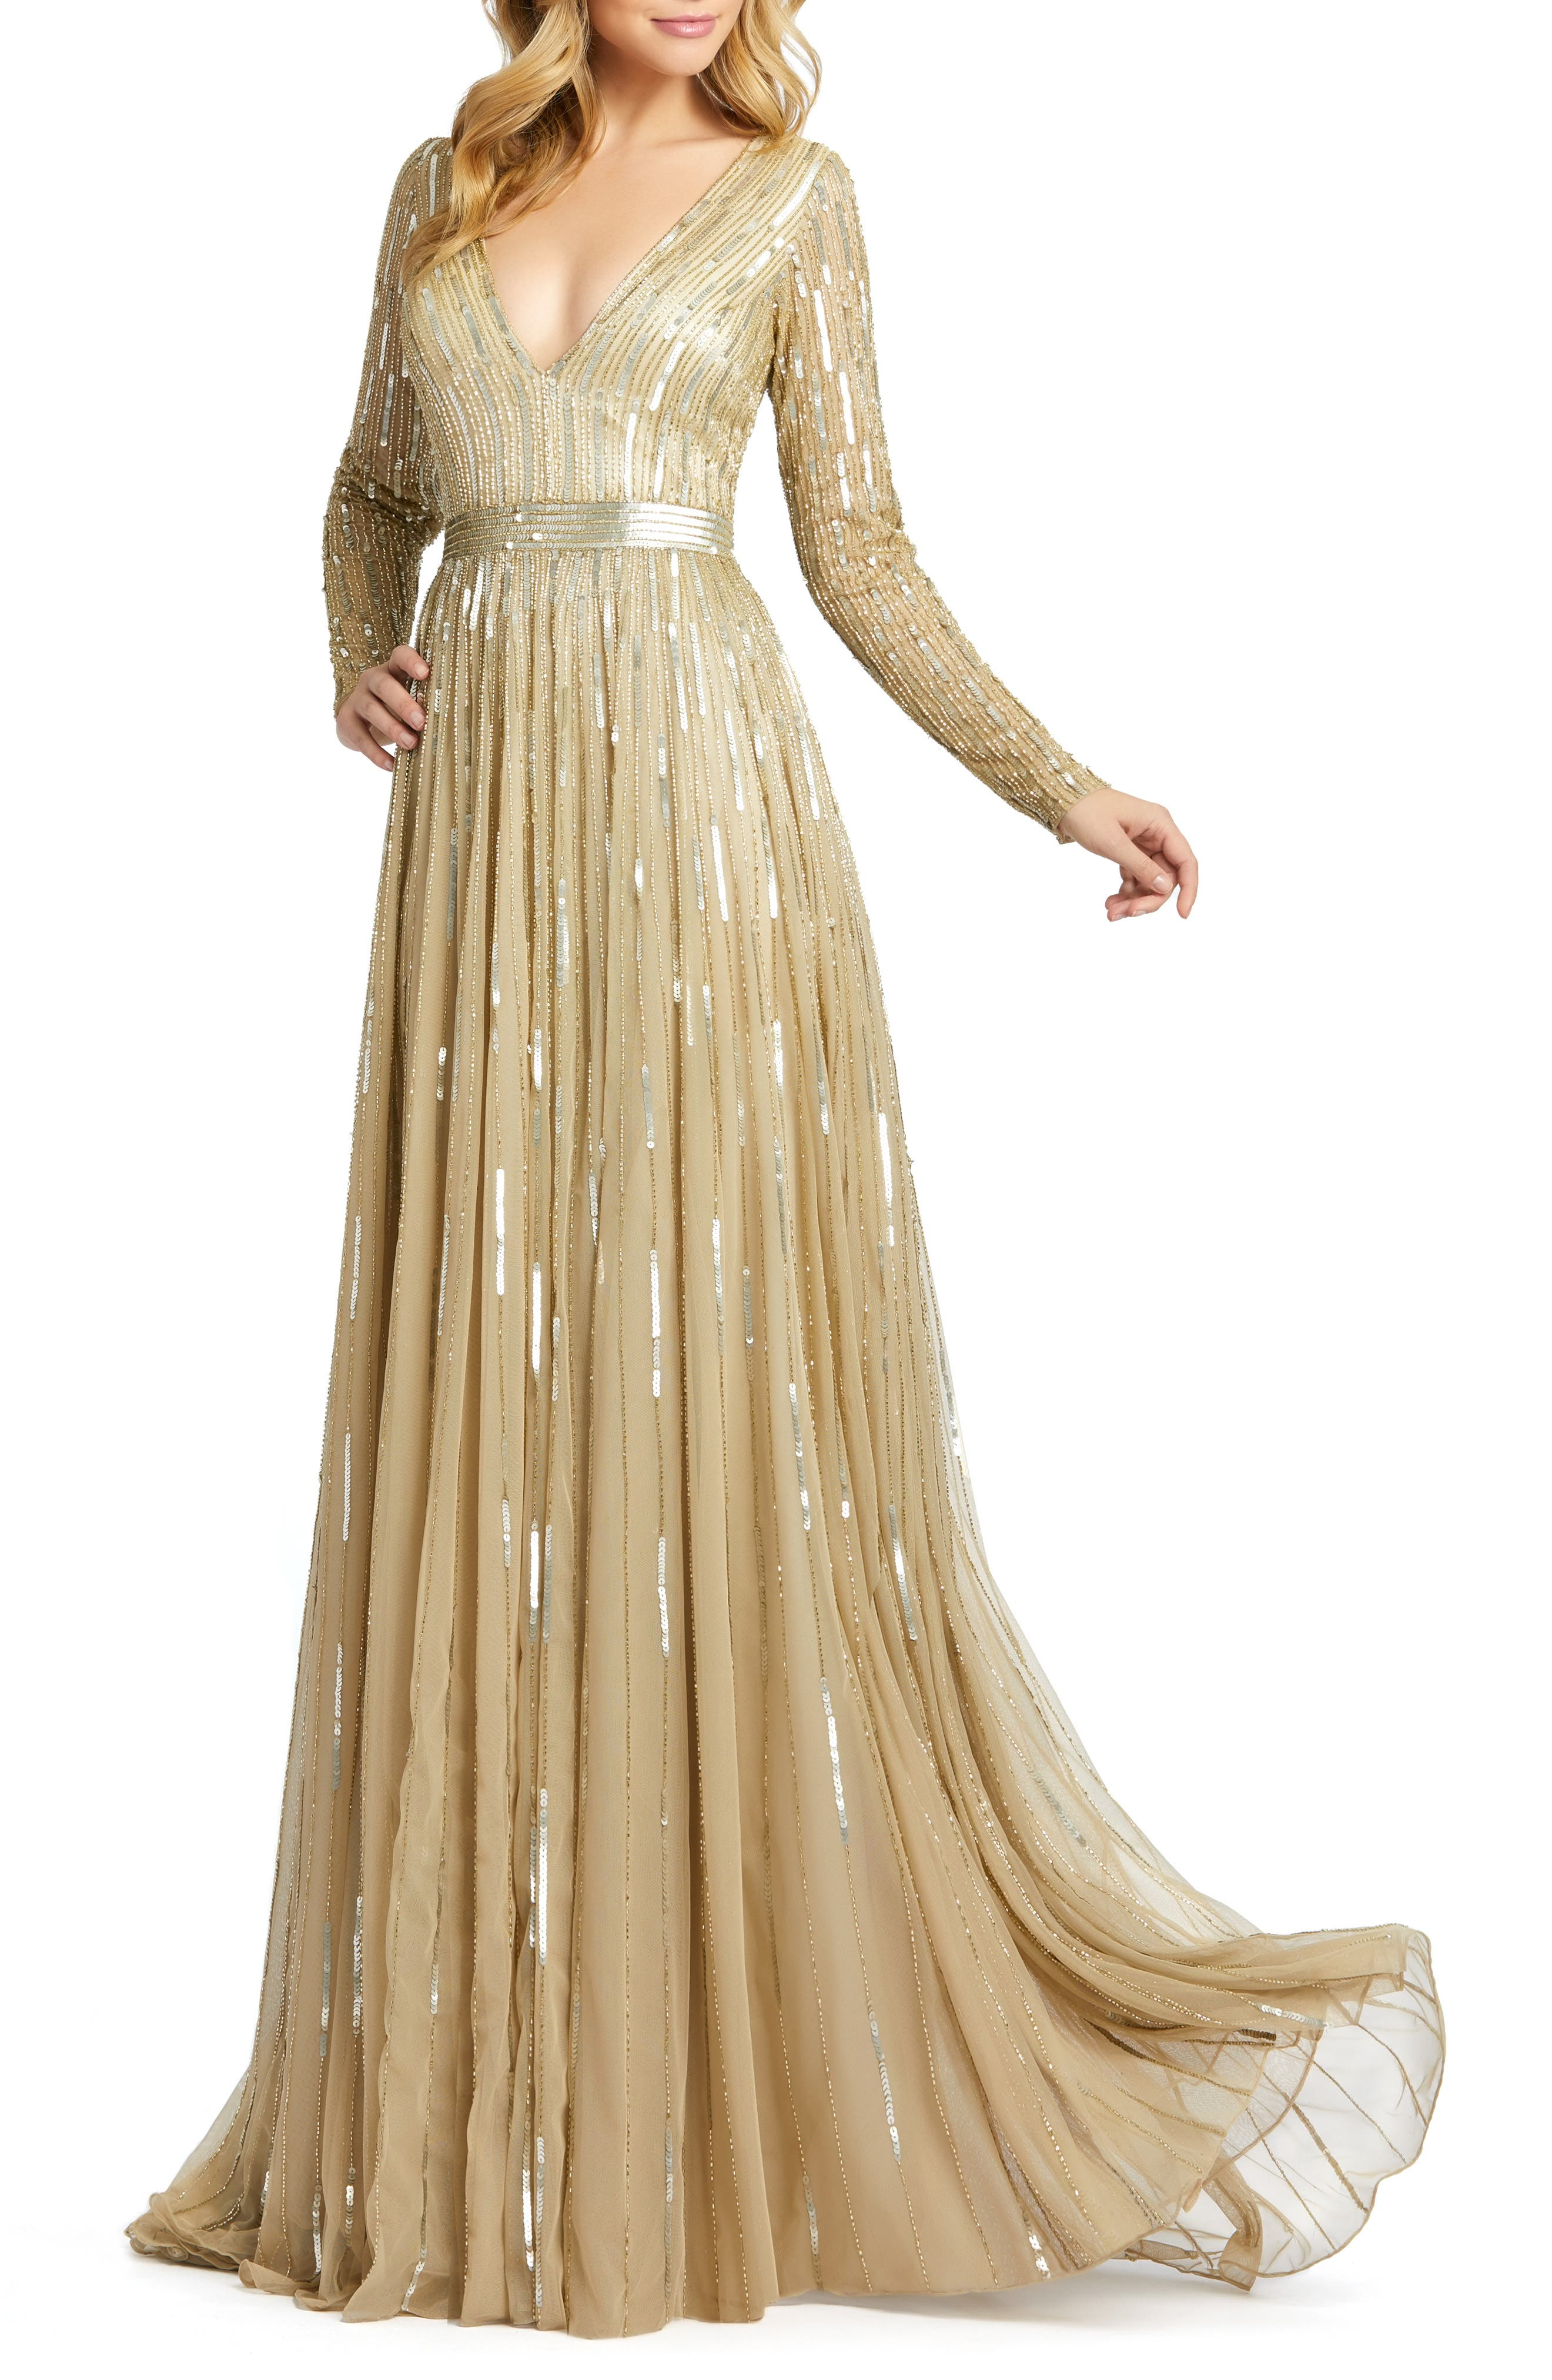 70s Prom, Formal, Evening, Party Dresses Womens MAC Duggal Long Sleeve Sequin  Bead Stripe Gown $598.00 AT vintagedancer.com